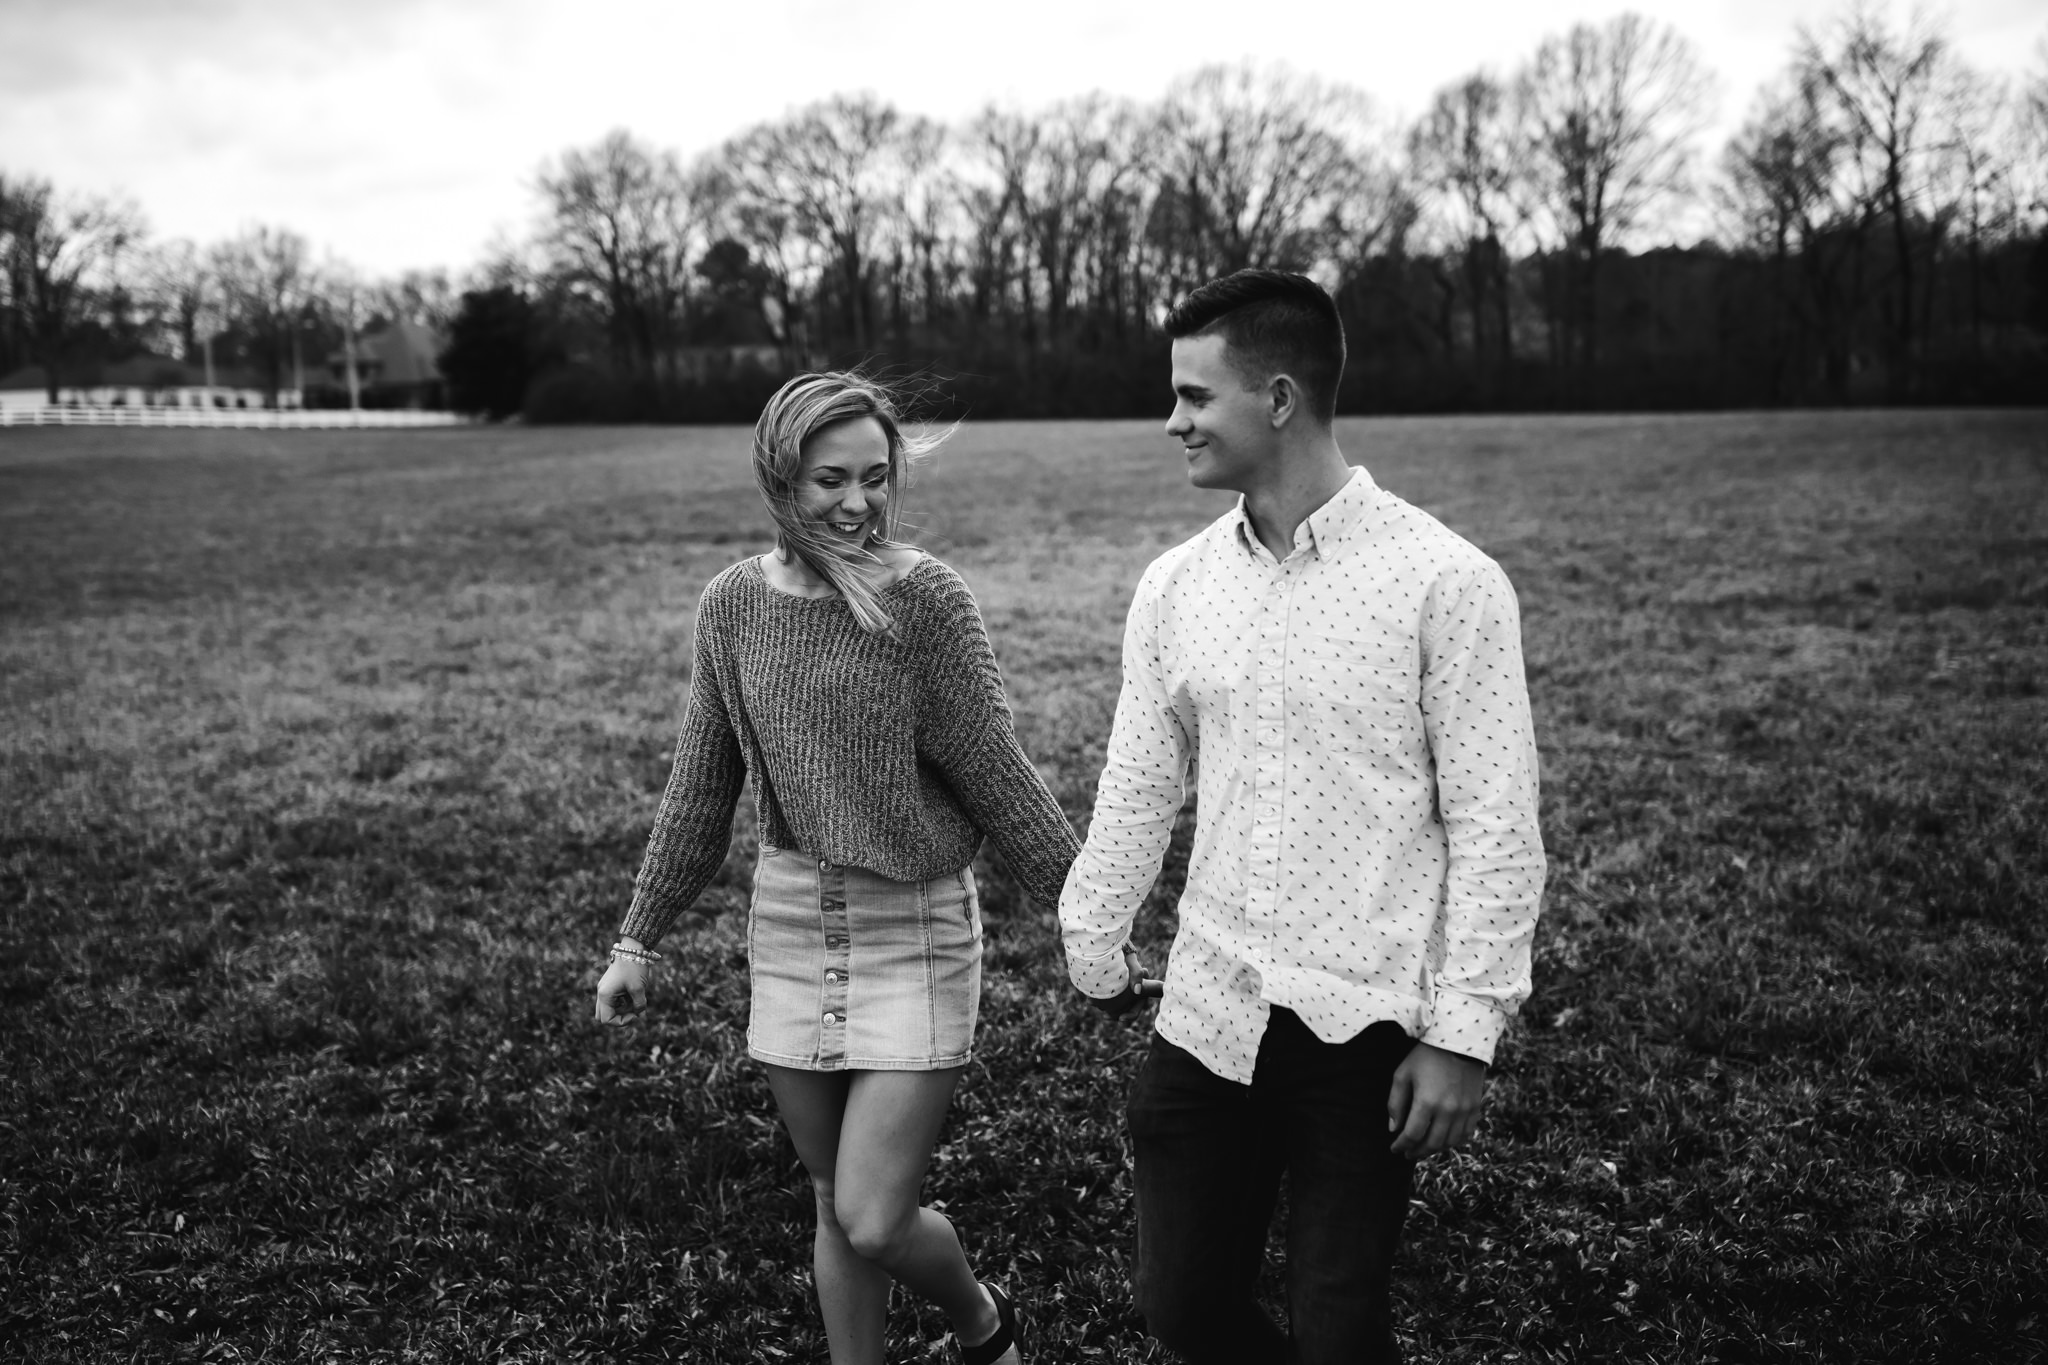 memphis-engagement-photographer-thewarmtharoundyou-greenhouse-engagement-pictures (63 of 118).jpg